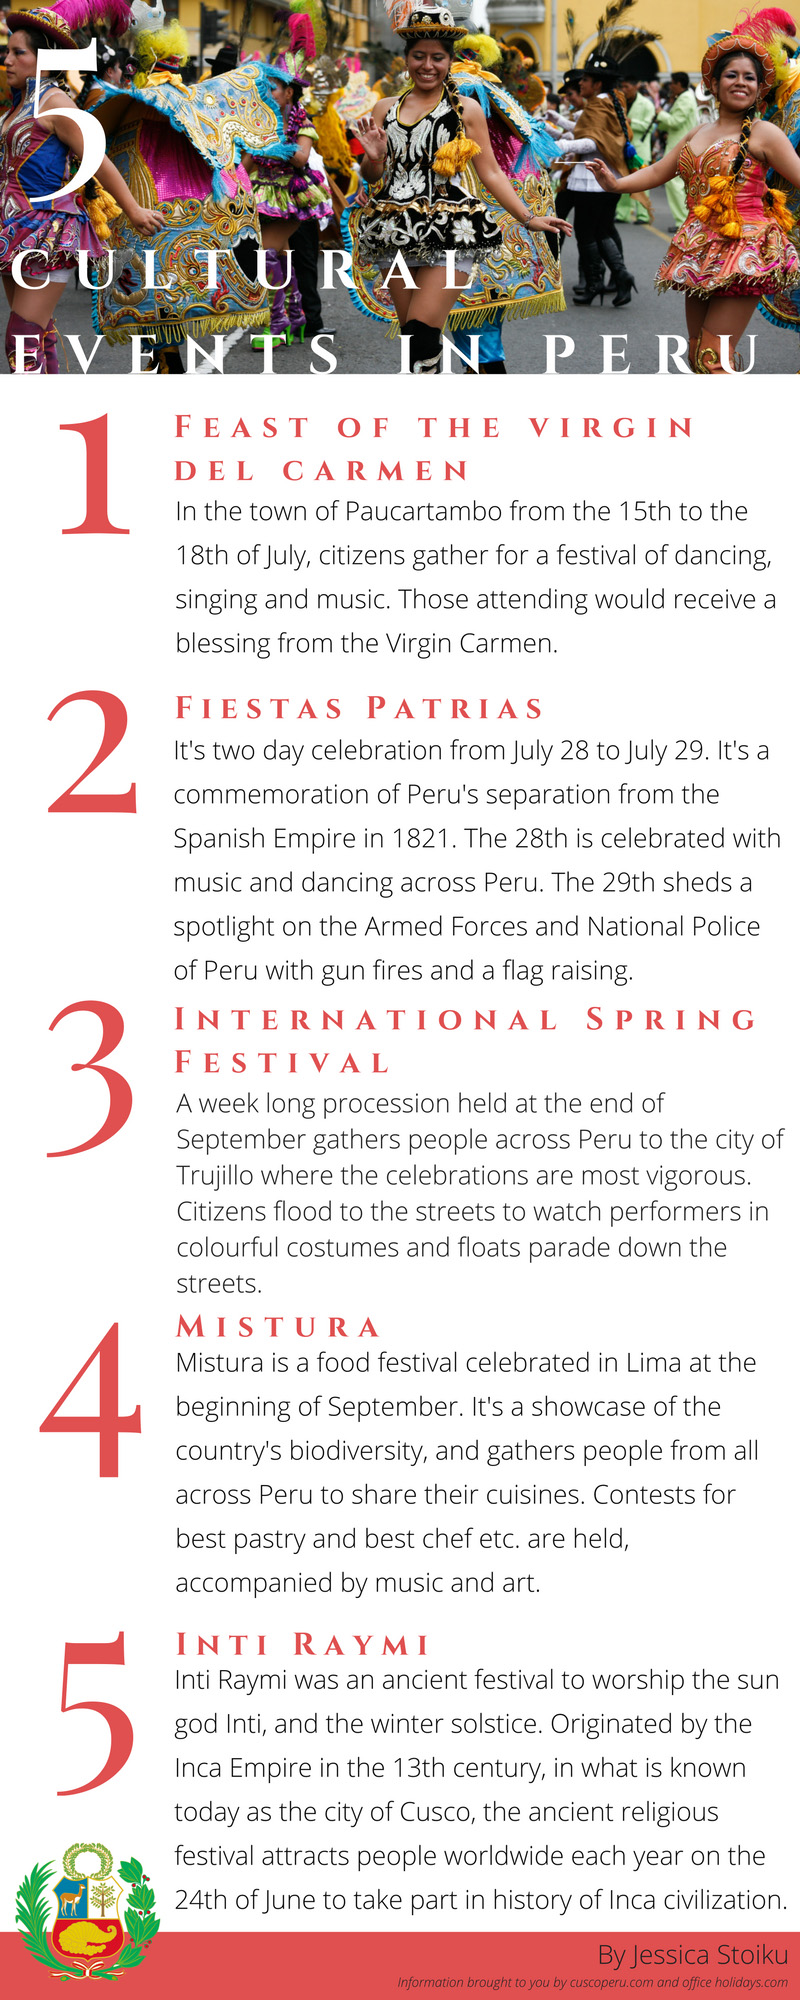 Here are five cultural events that take place in Peru - The Chronicle